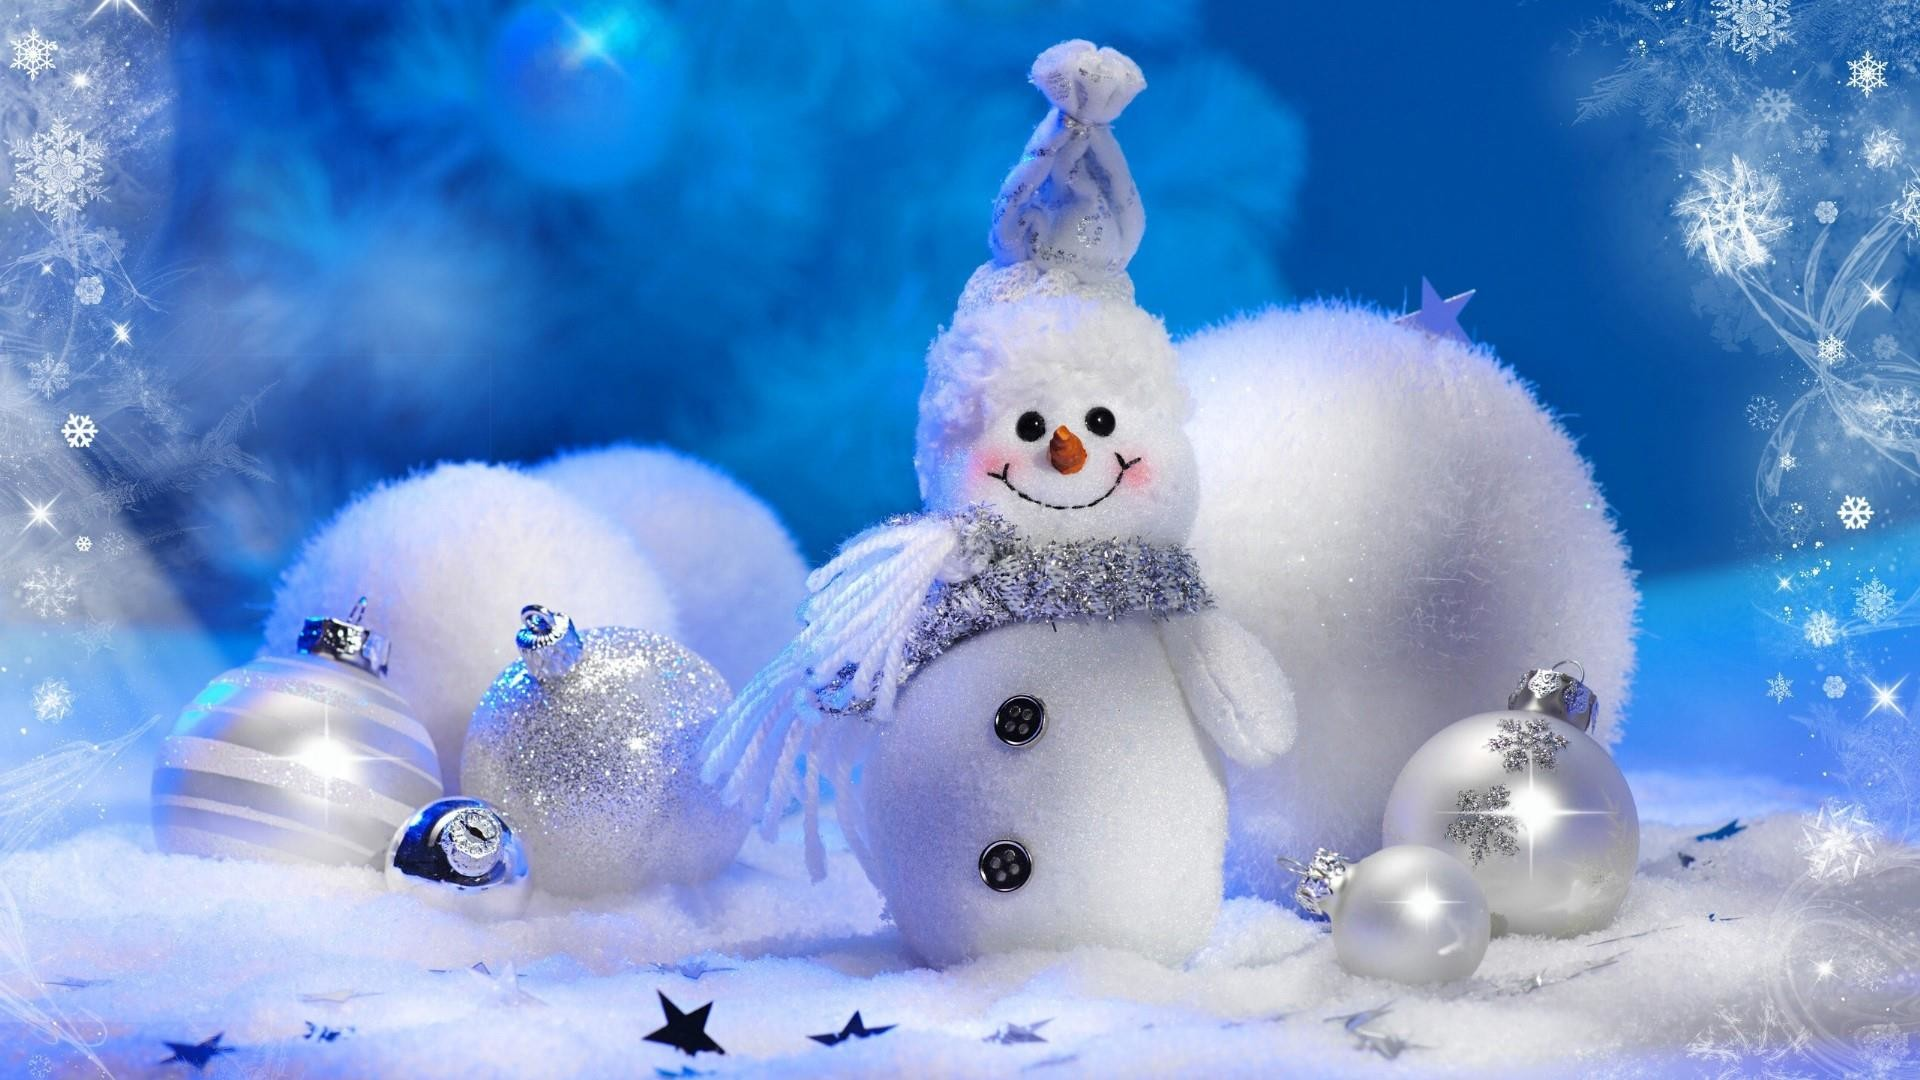 Res: 1920x1080, Snowman Christmas Decoration Wallpaper | Wallpaper Studio 10 | Tens of  thousands HD and UltraHD wallpapers for Android, Windows and Xbox